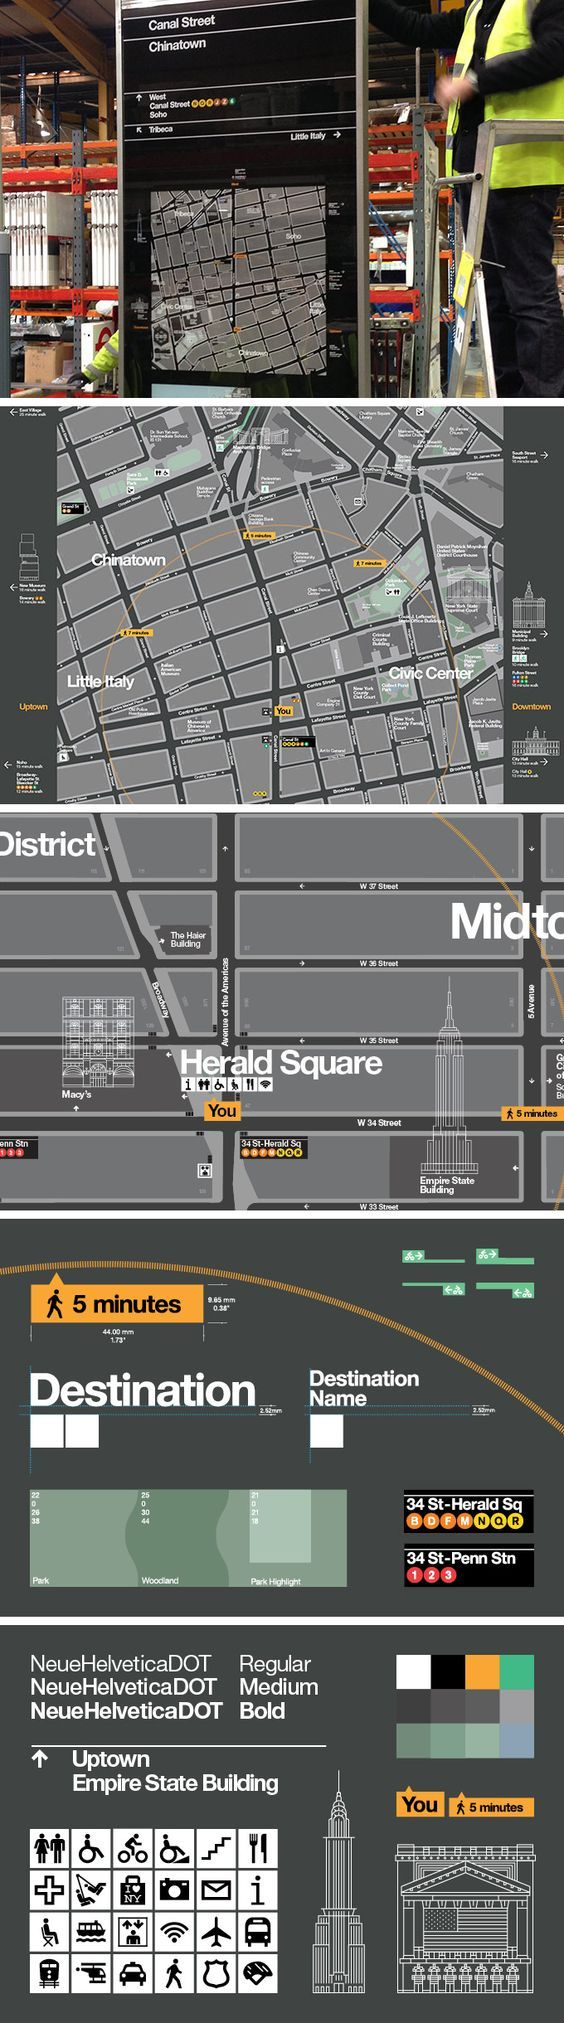 Best  York Tourist Information Ideas On Pinterest - Nyc map canal street